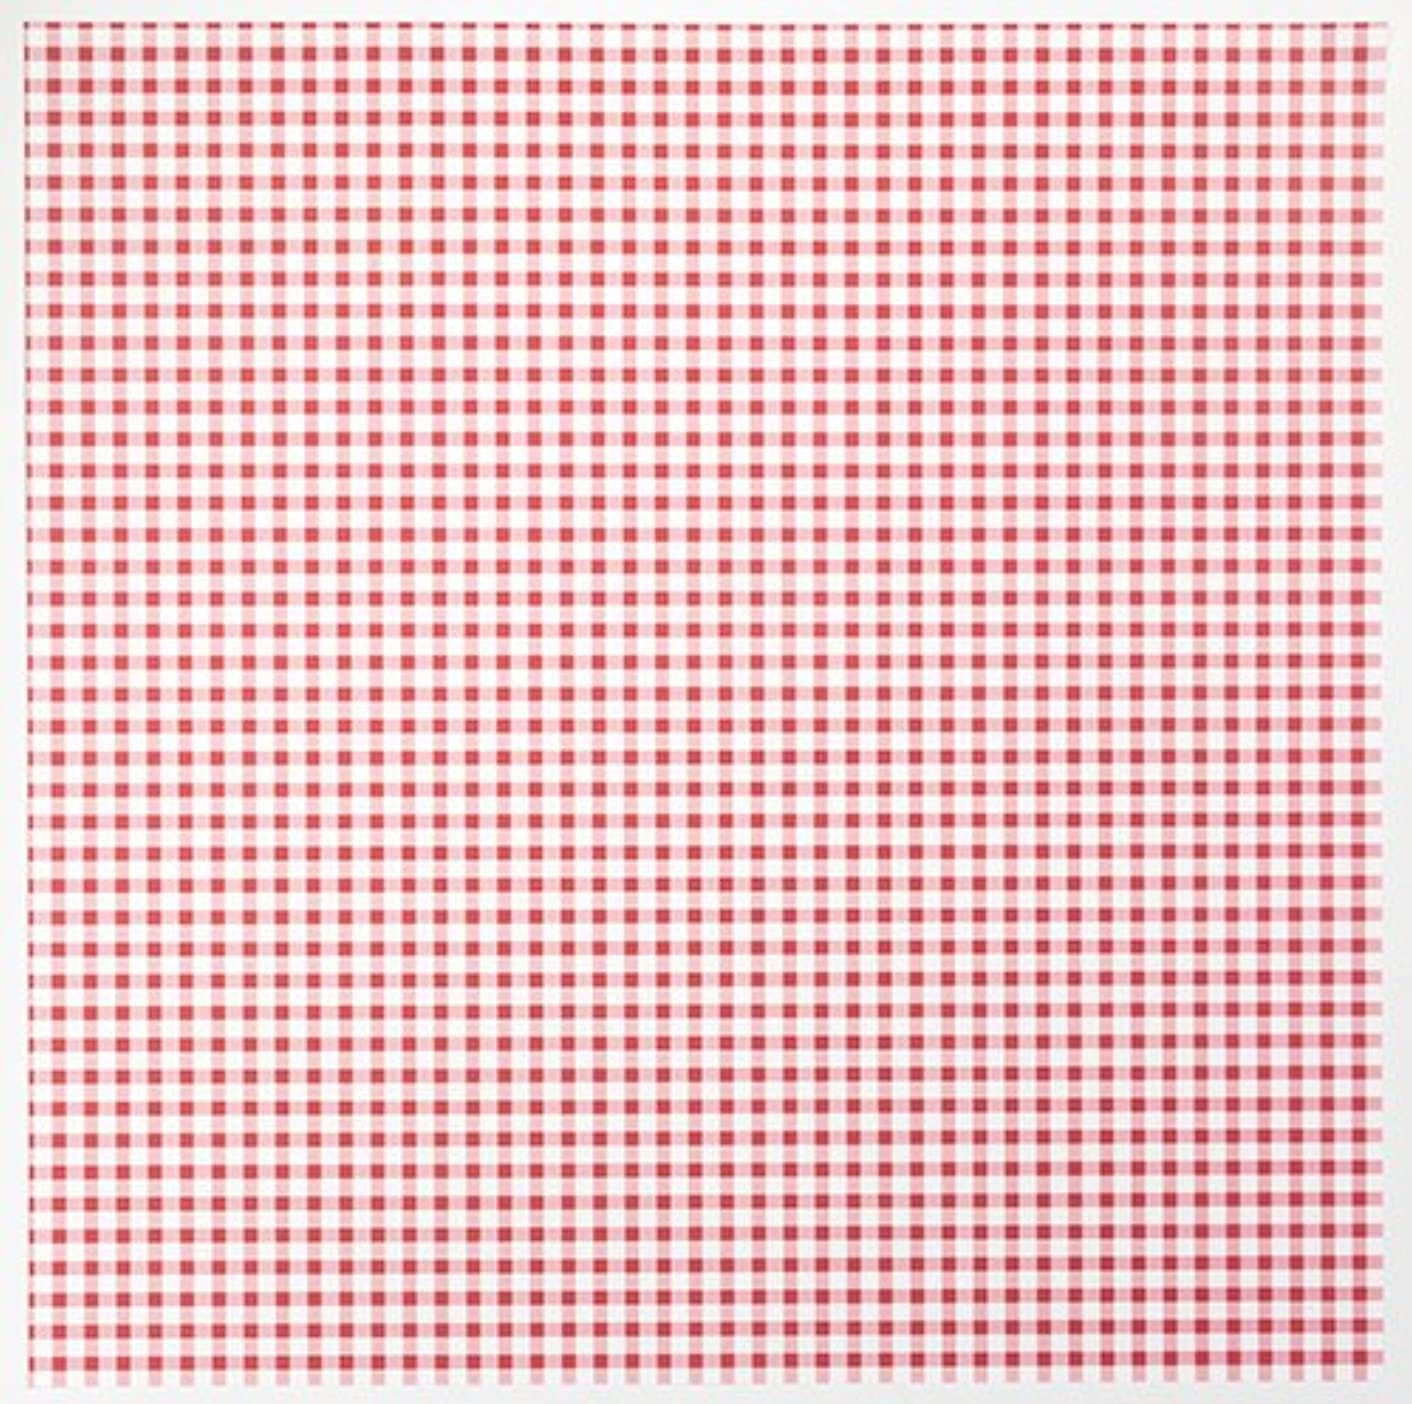 American Crafts 25 12 x 12 Inch Printed Checks Paper Pack by Die Cuts with a View Piece